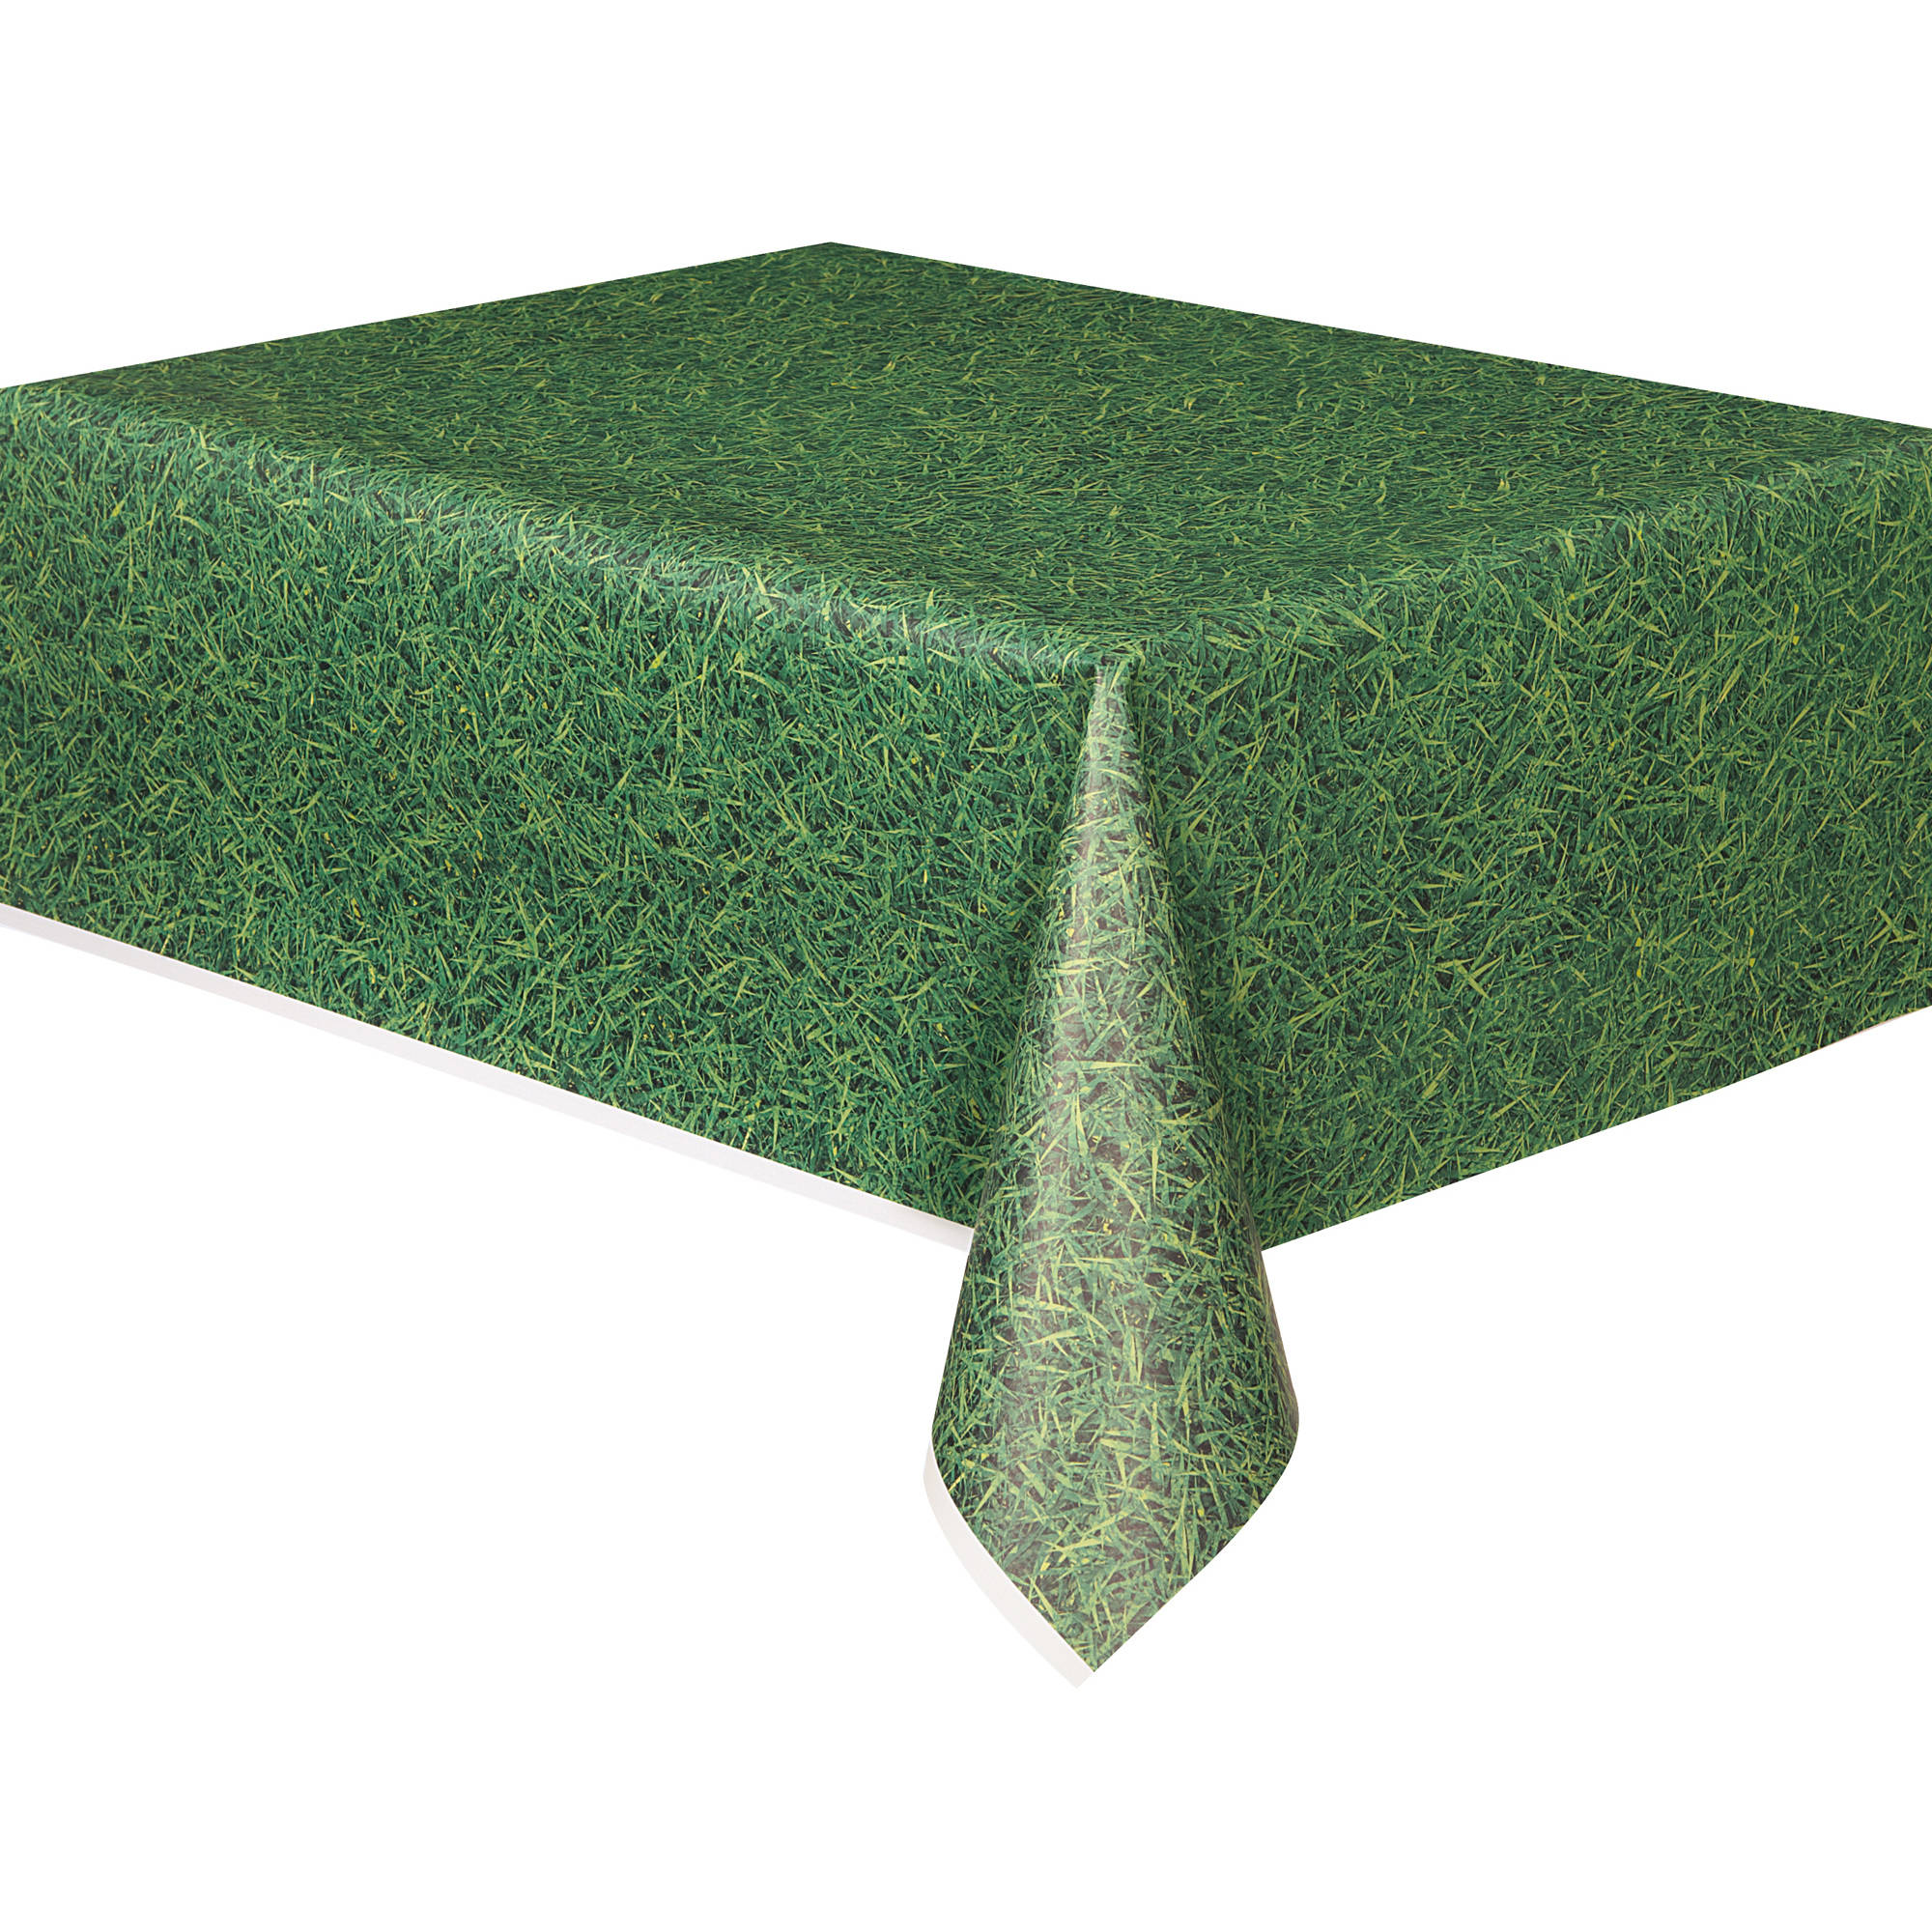 "Plastic Green Grass Printed Table Cover, 108"" x 54"""